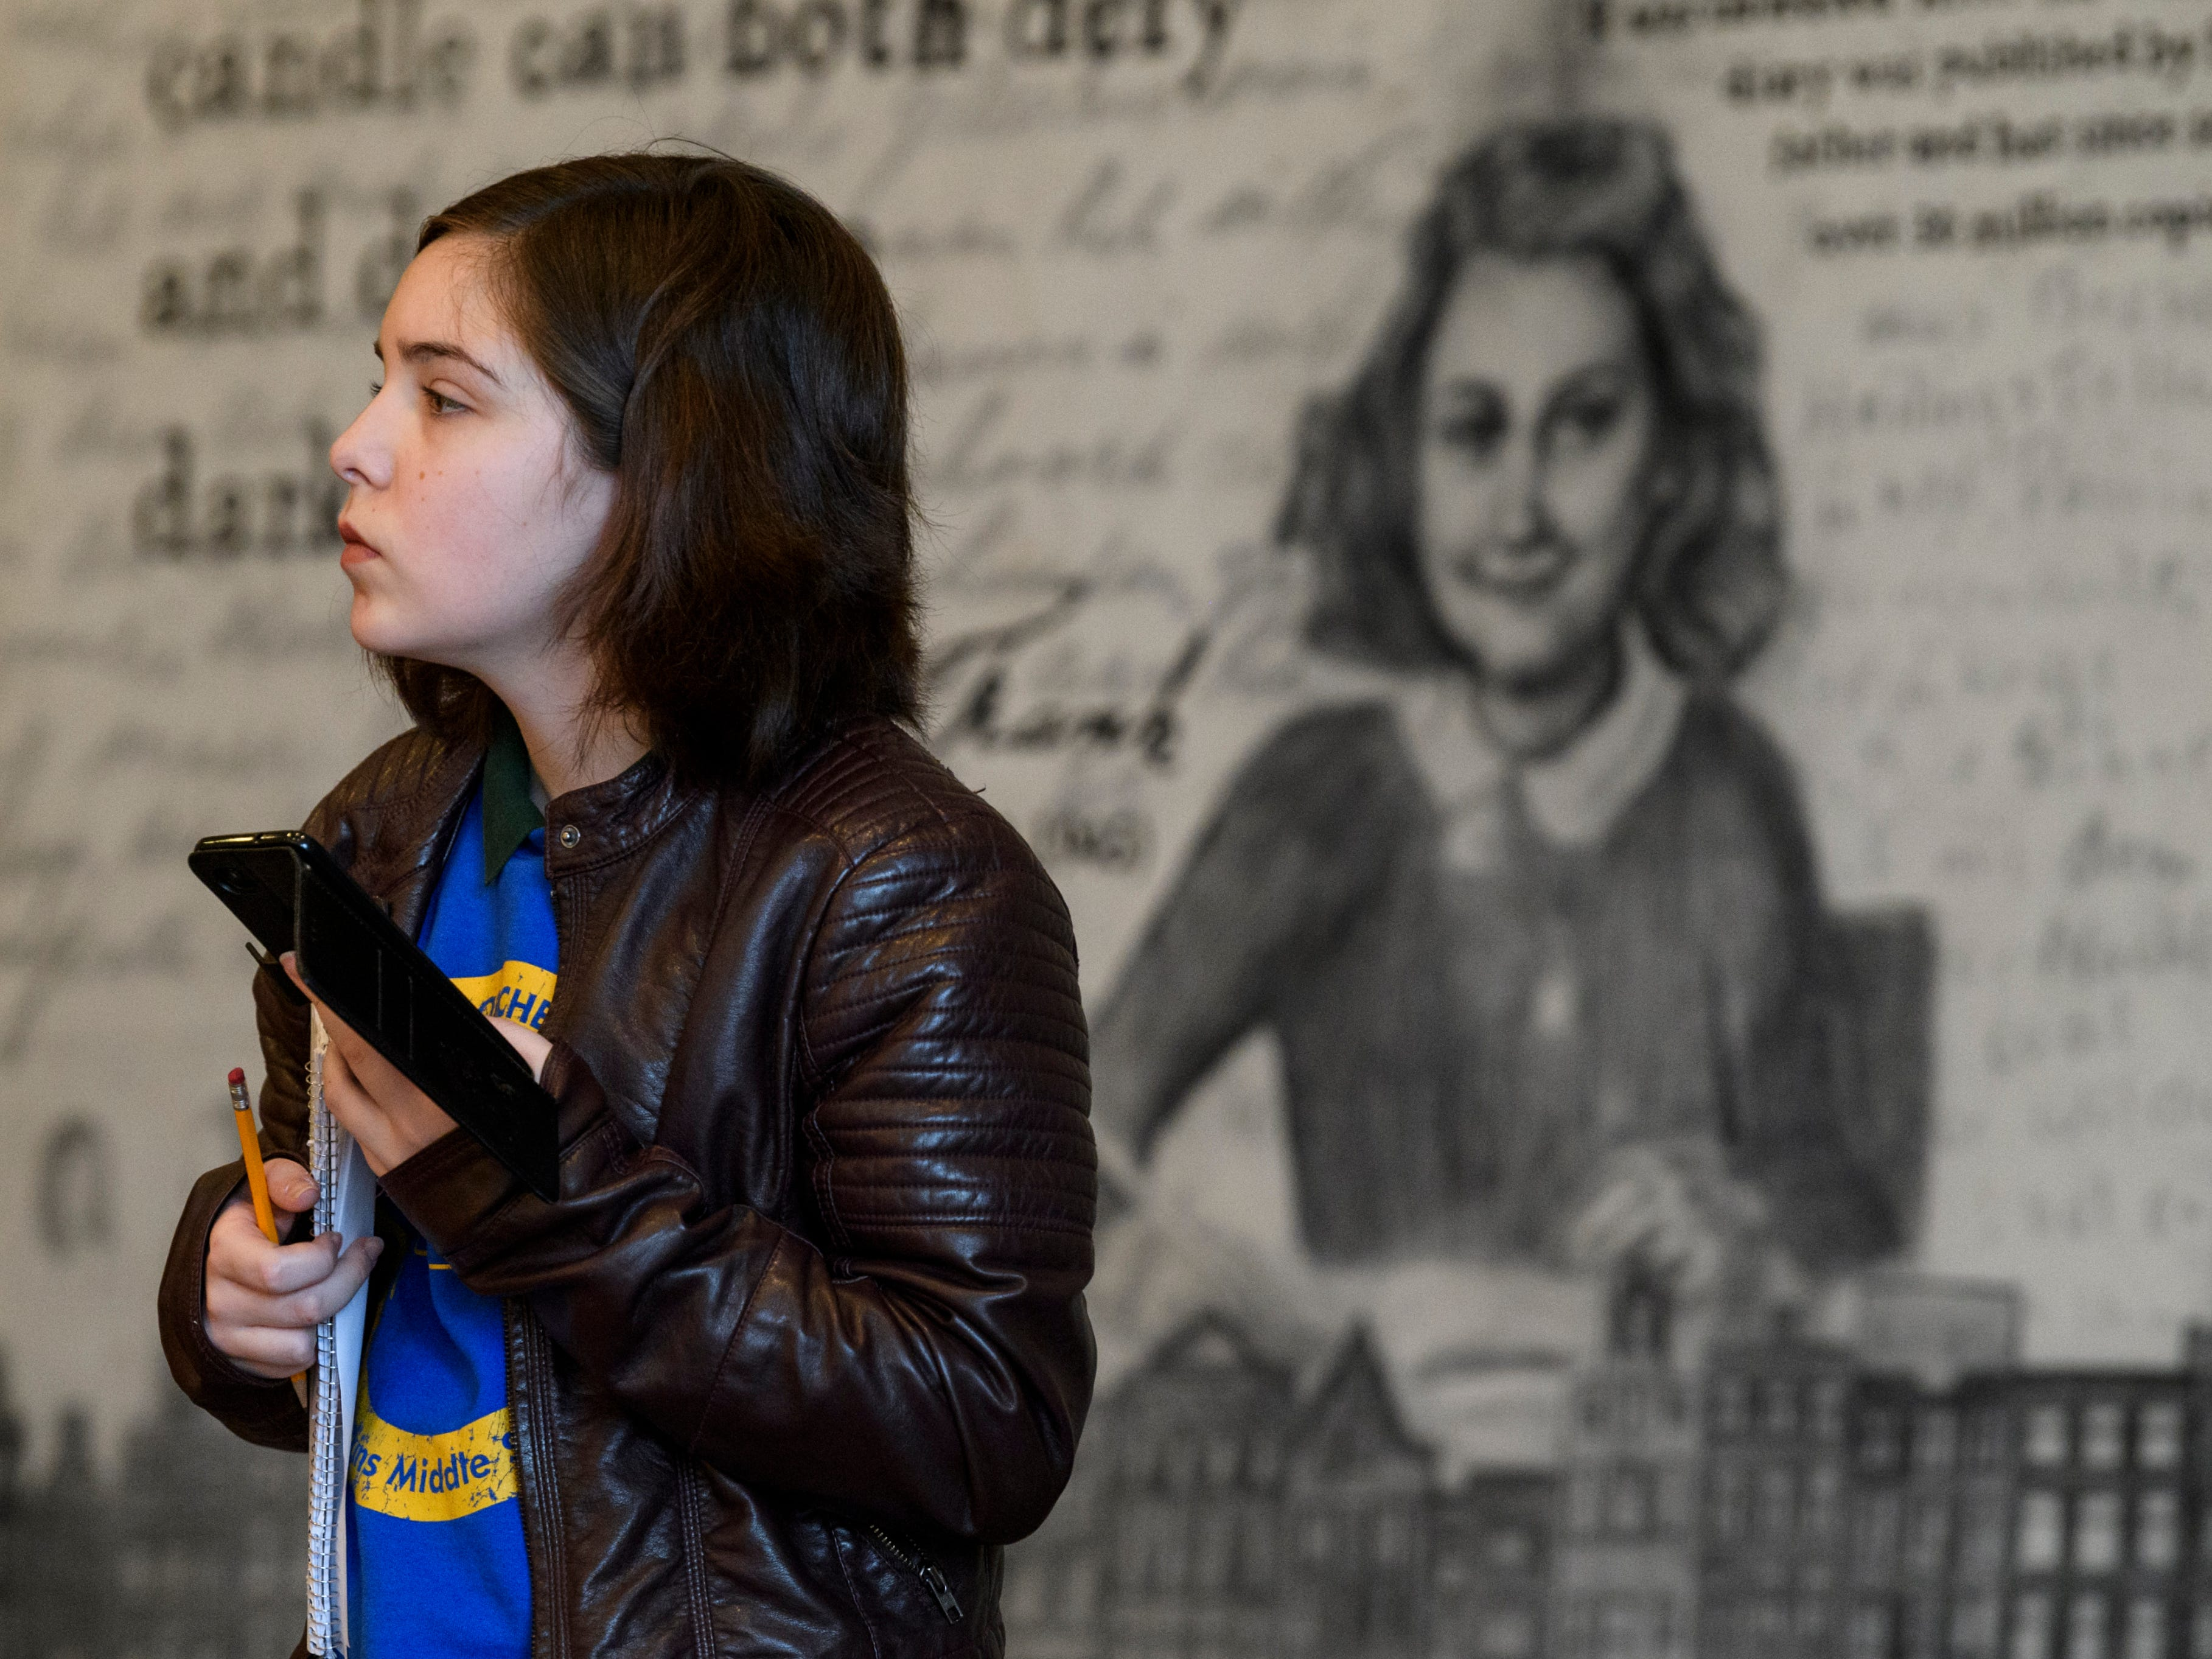 """Emma Sallee, Thompkins Middle School sixth-grader from Rebekah Hodge's class, stands in front of a mural depicting Anne Frank, one of the most discussed Jewish victims of the Holocaust, while viewing the """"A New Generation Remembers"""" Holocaust exhibit at Temple Adath B'nai Israel in Evansville, Ind., Wednesday, Feb. 6, 2019."""